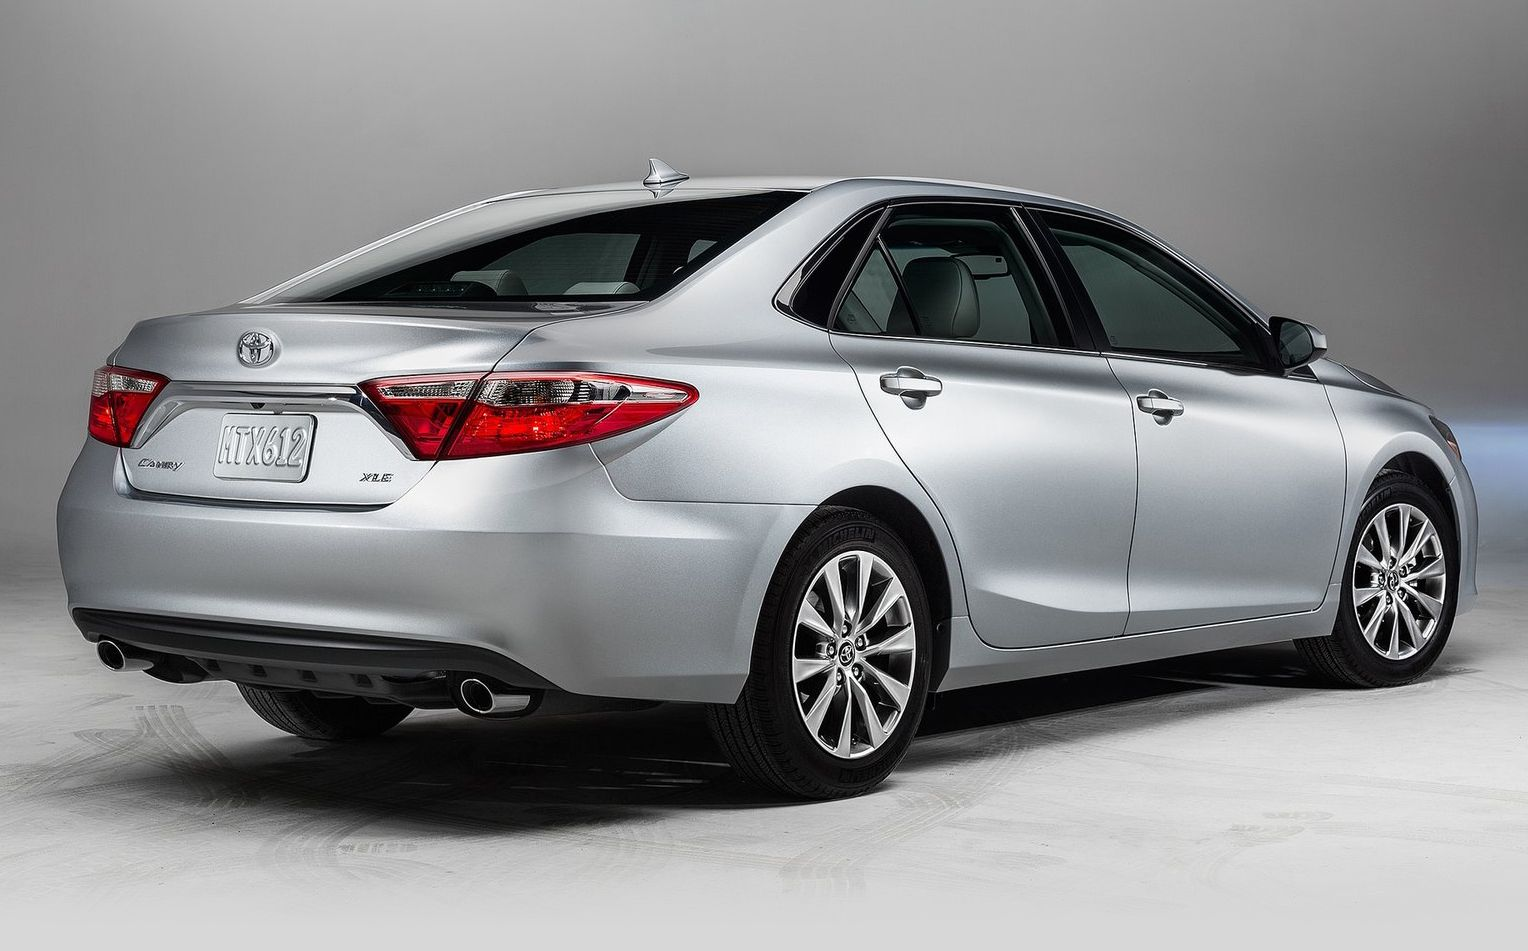 Awesome 2015 Toyota Camry Xse Price Featured Car 2015 Toyota